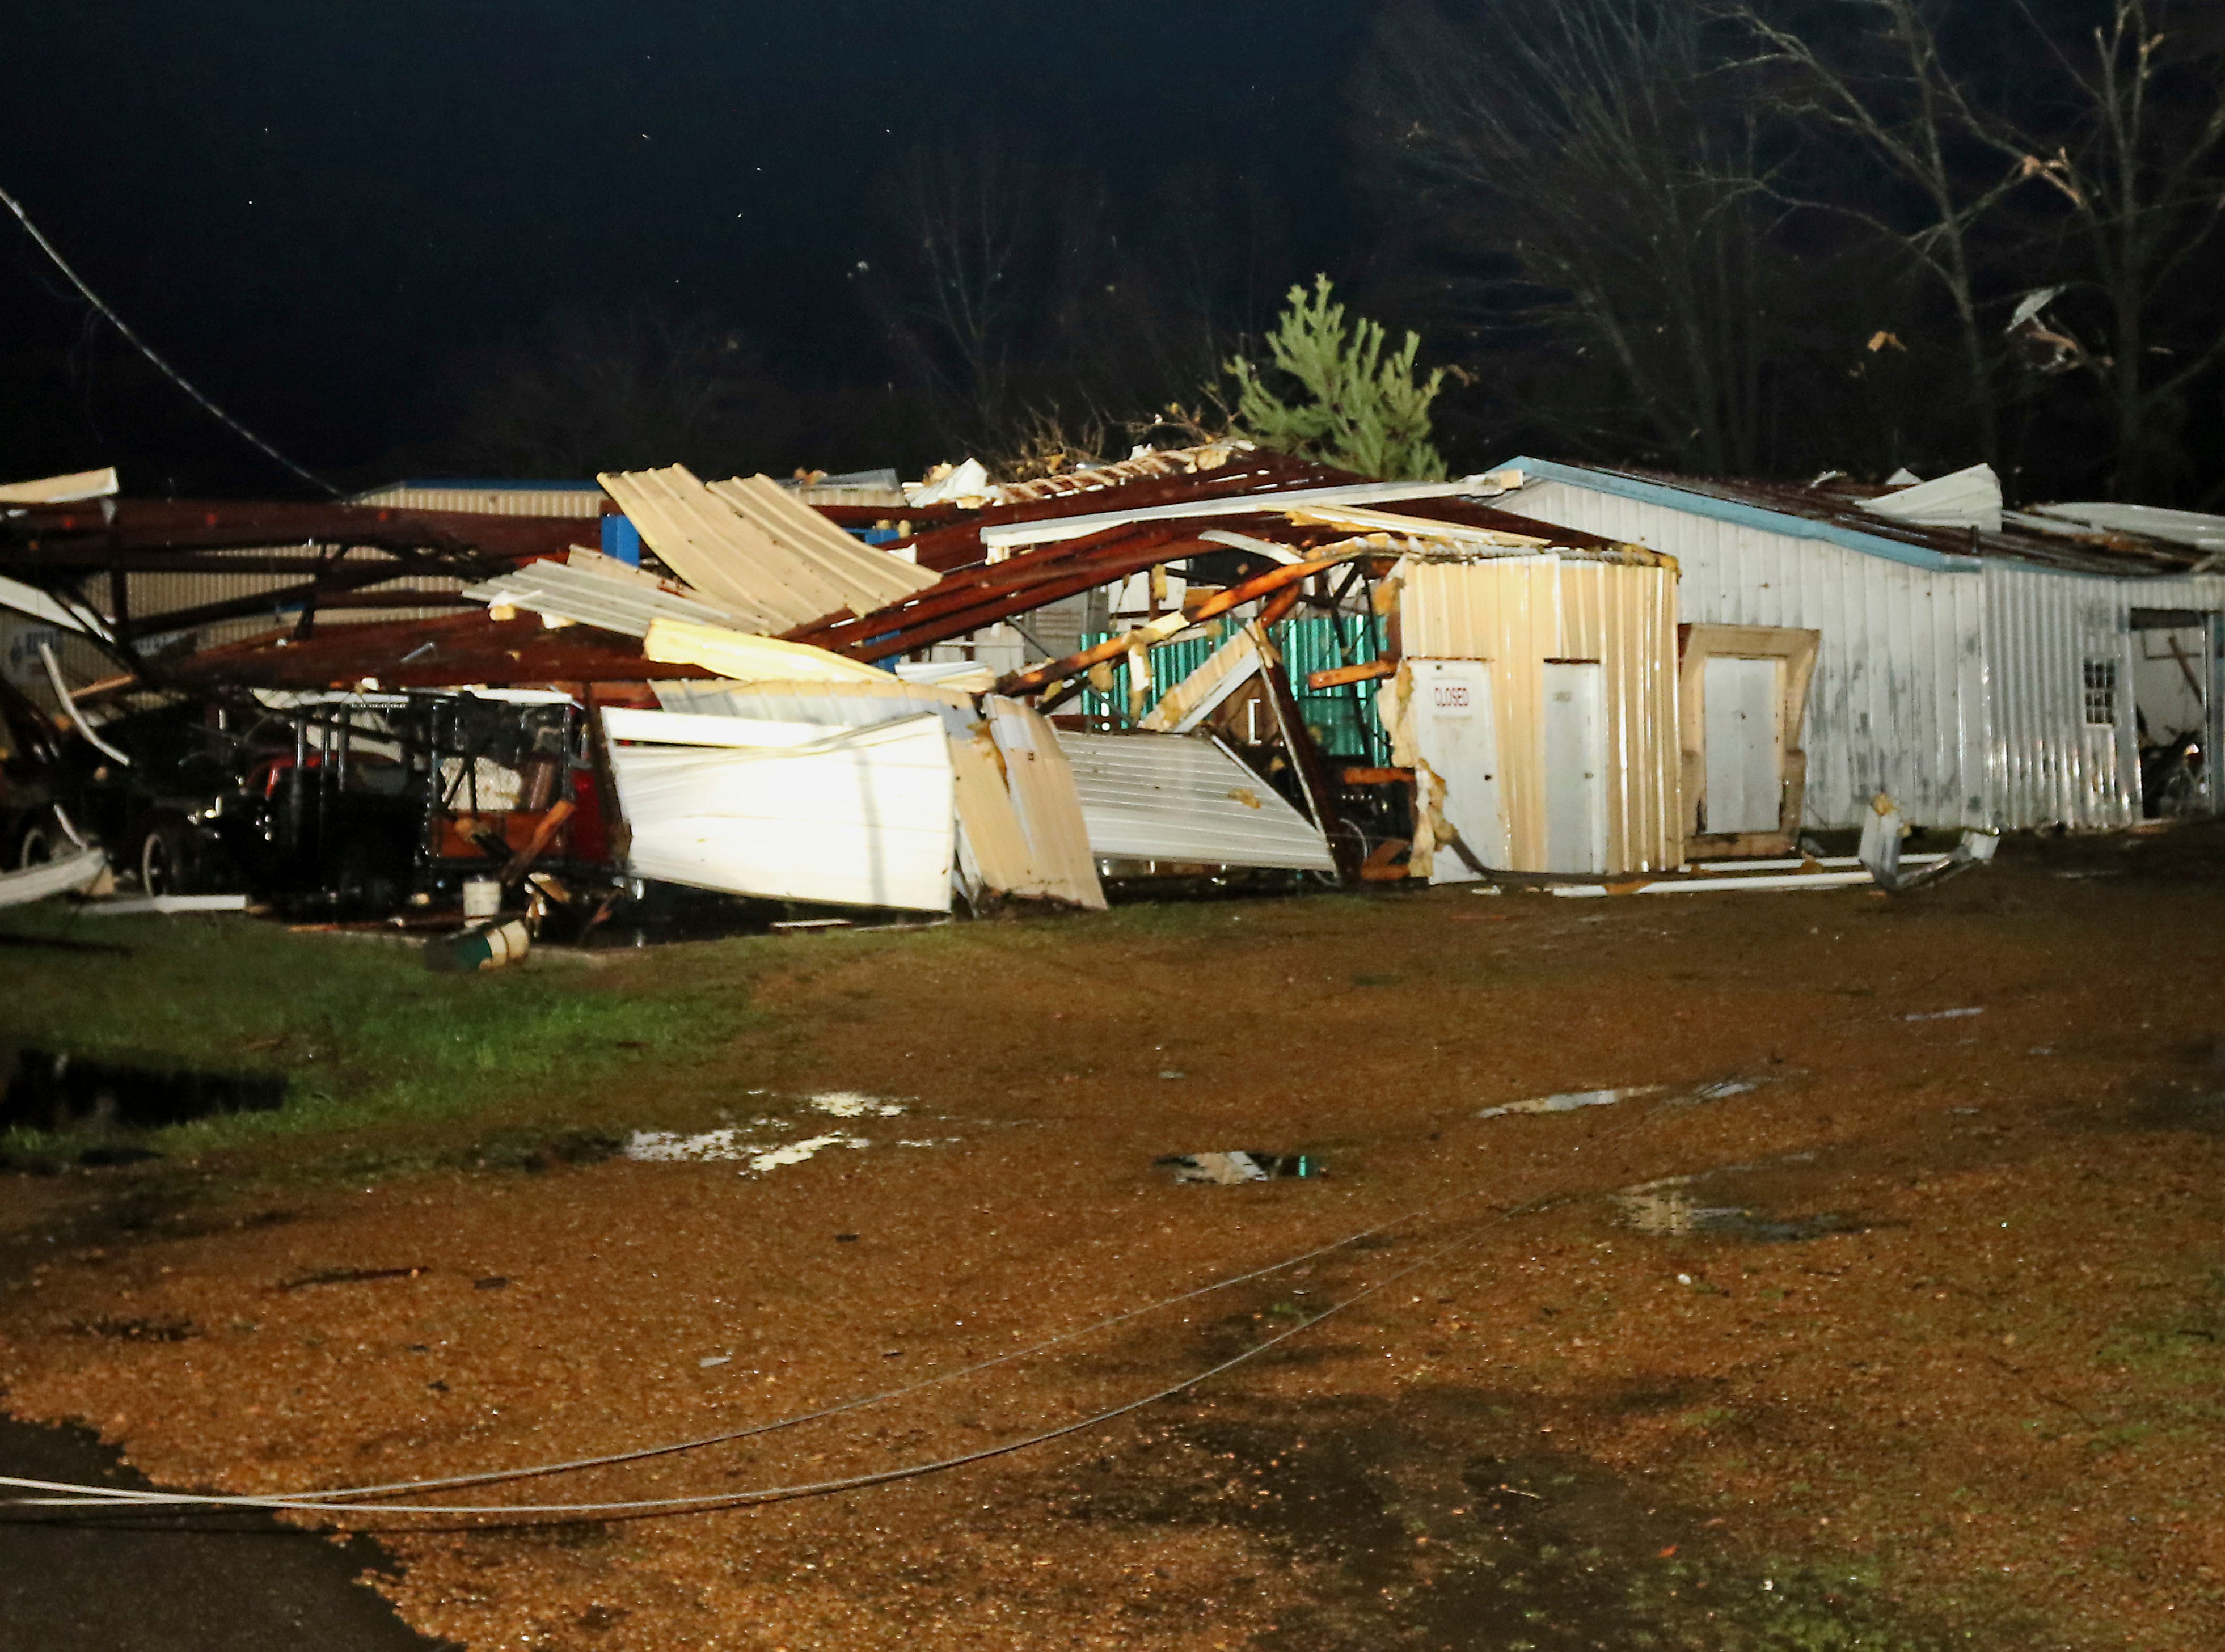 A building belonging to Lawrence Motors along Highway 50 in Columbus, Miss. is destroyed by a tornado on Saturday, Feb. 23, 2019. The building housed several antique cars. (AP Photo/Jim Lytle)